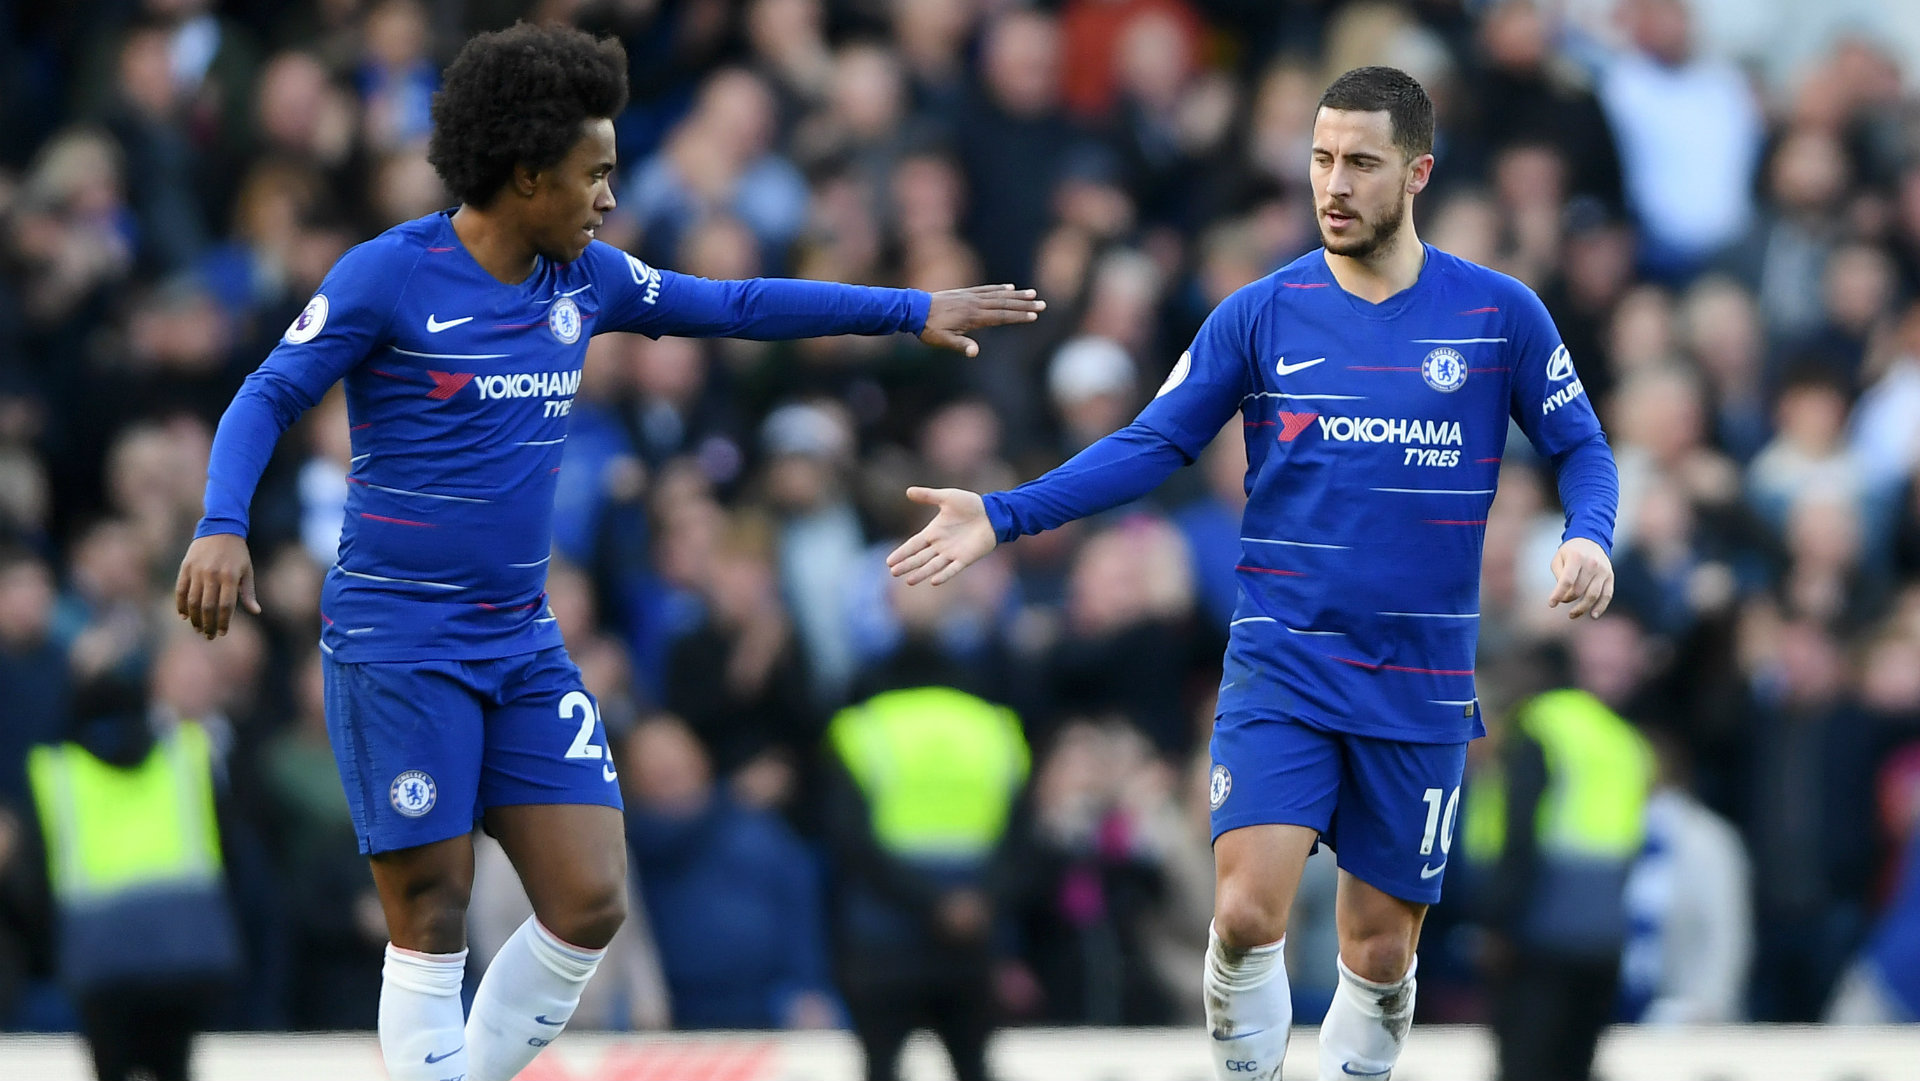 Chelsea's new No. 10: Willian reveals he is to inherit shirt from departed Hazard